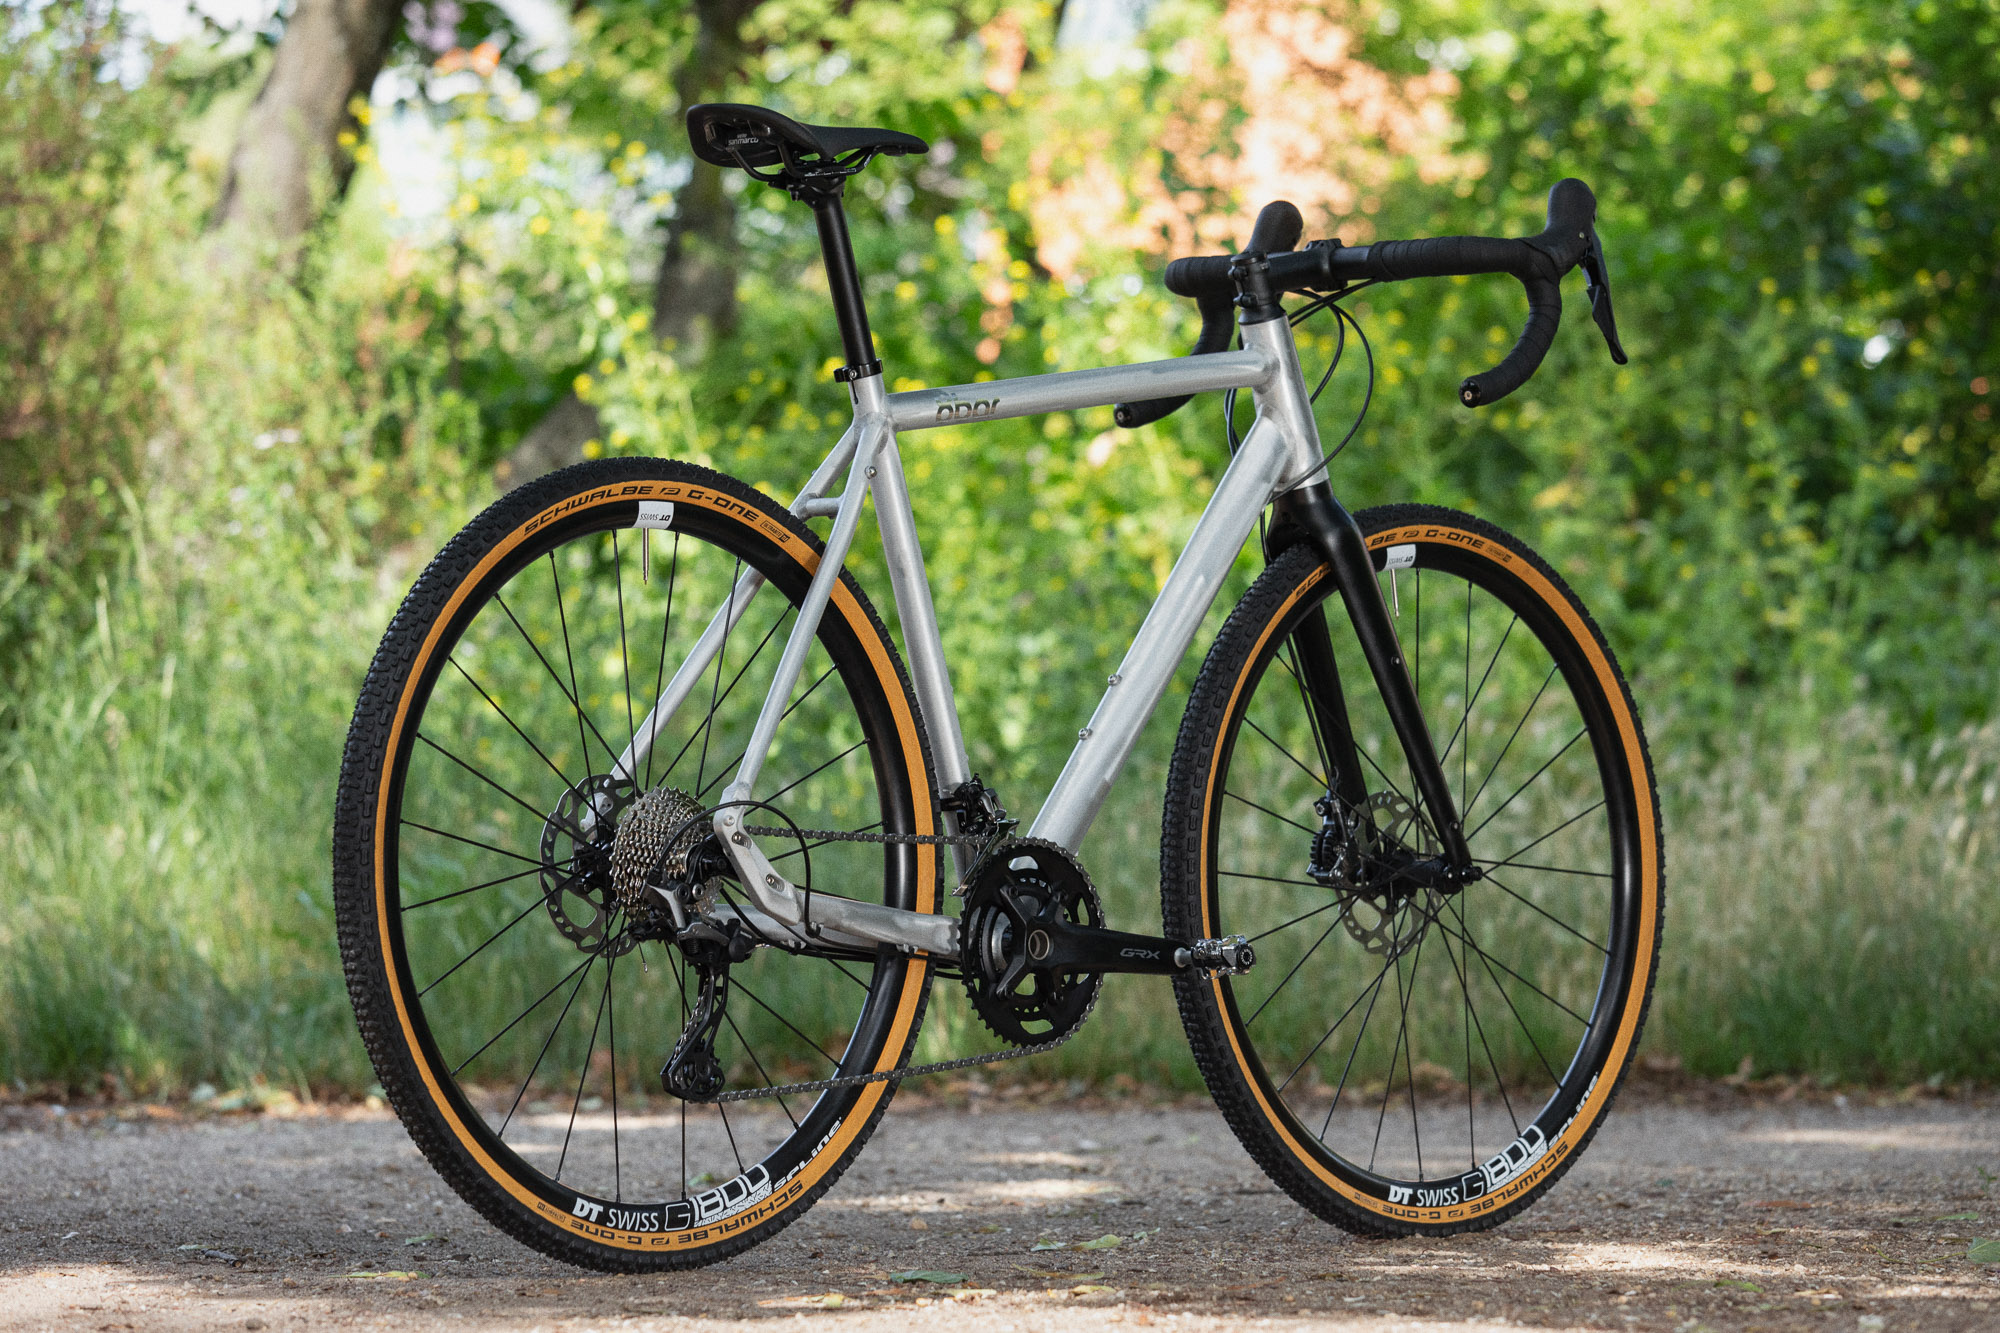 8bar-complete-bike-mitte-raw-gravel-lr-3